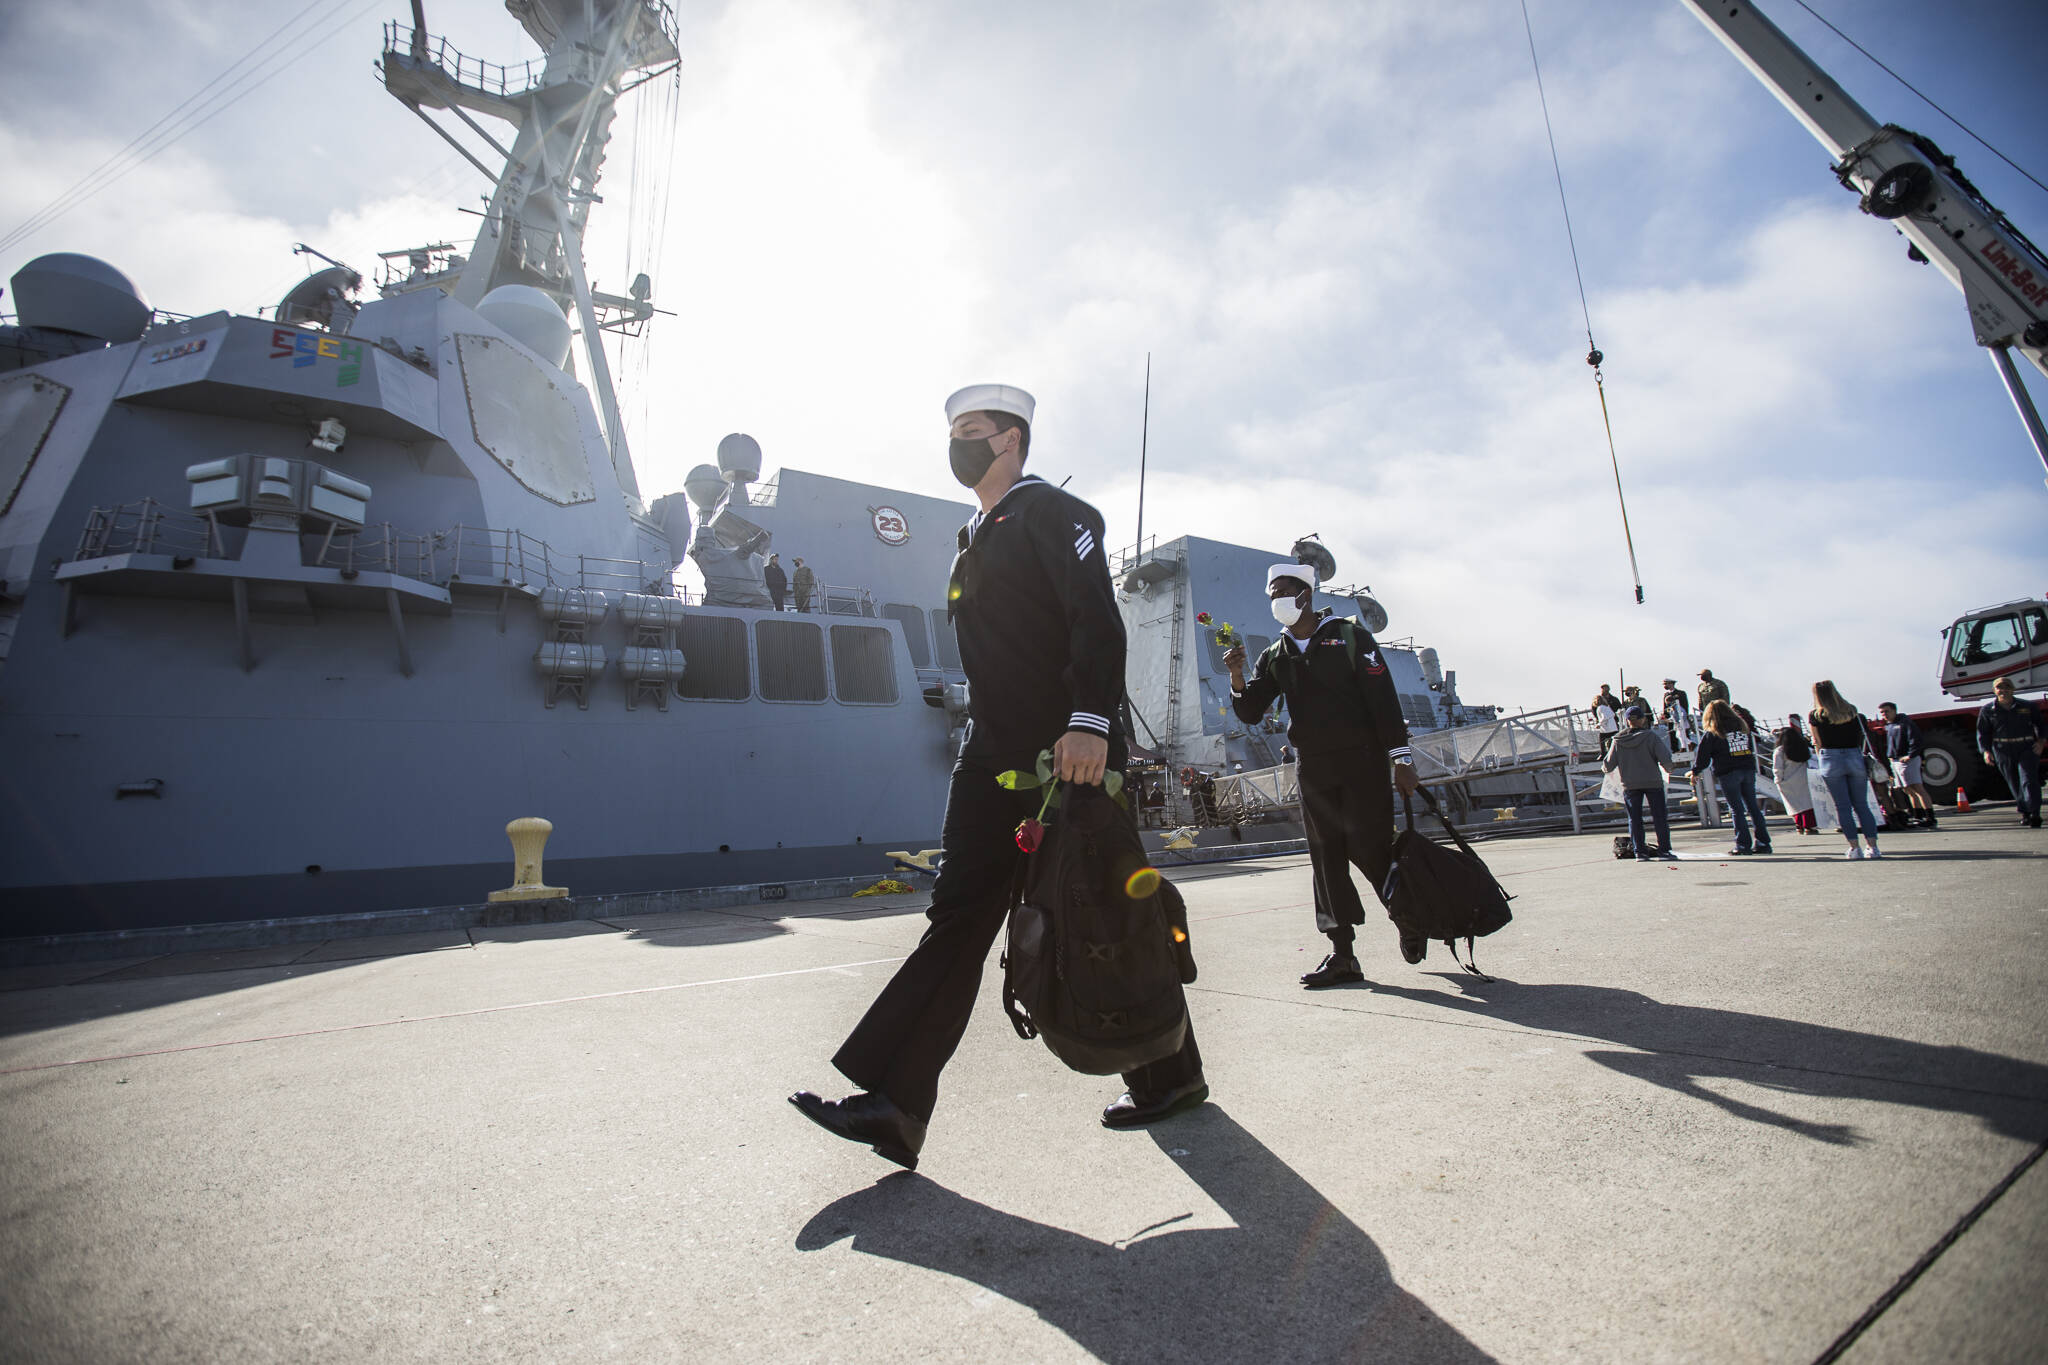 Sailors disembark the USS Kidd after returning from deployment on Friday in Everett. (Olivia Vanni / The Herald)